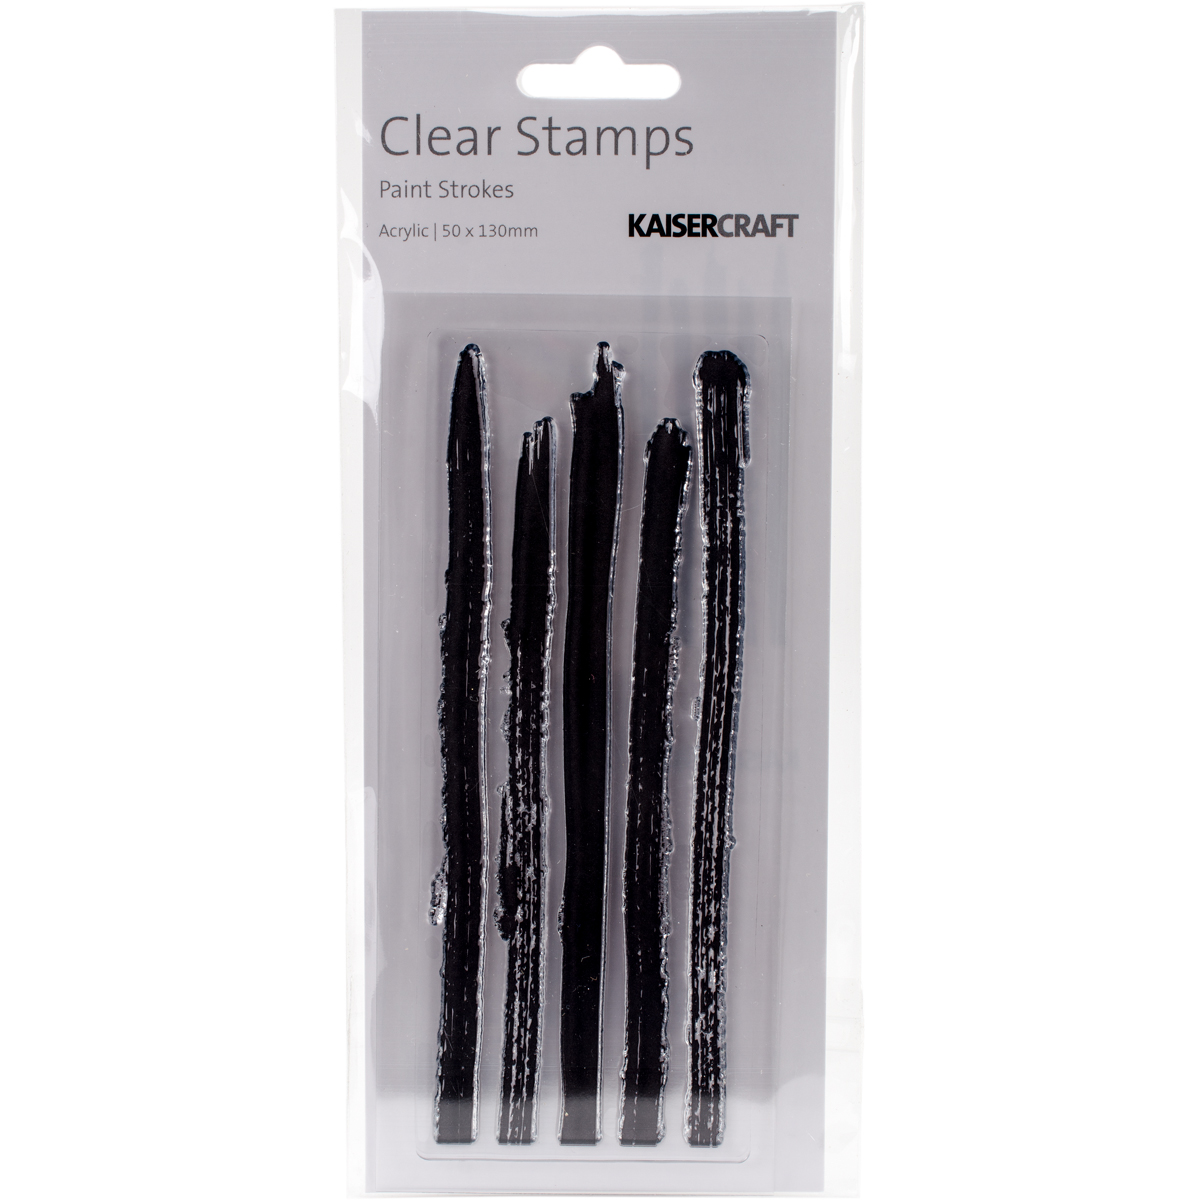 Texture Clear Stamps 2X5-Paint Strokes